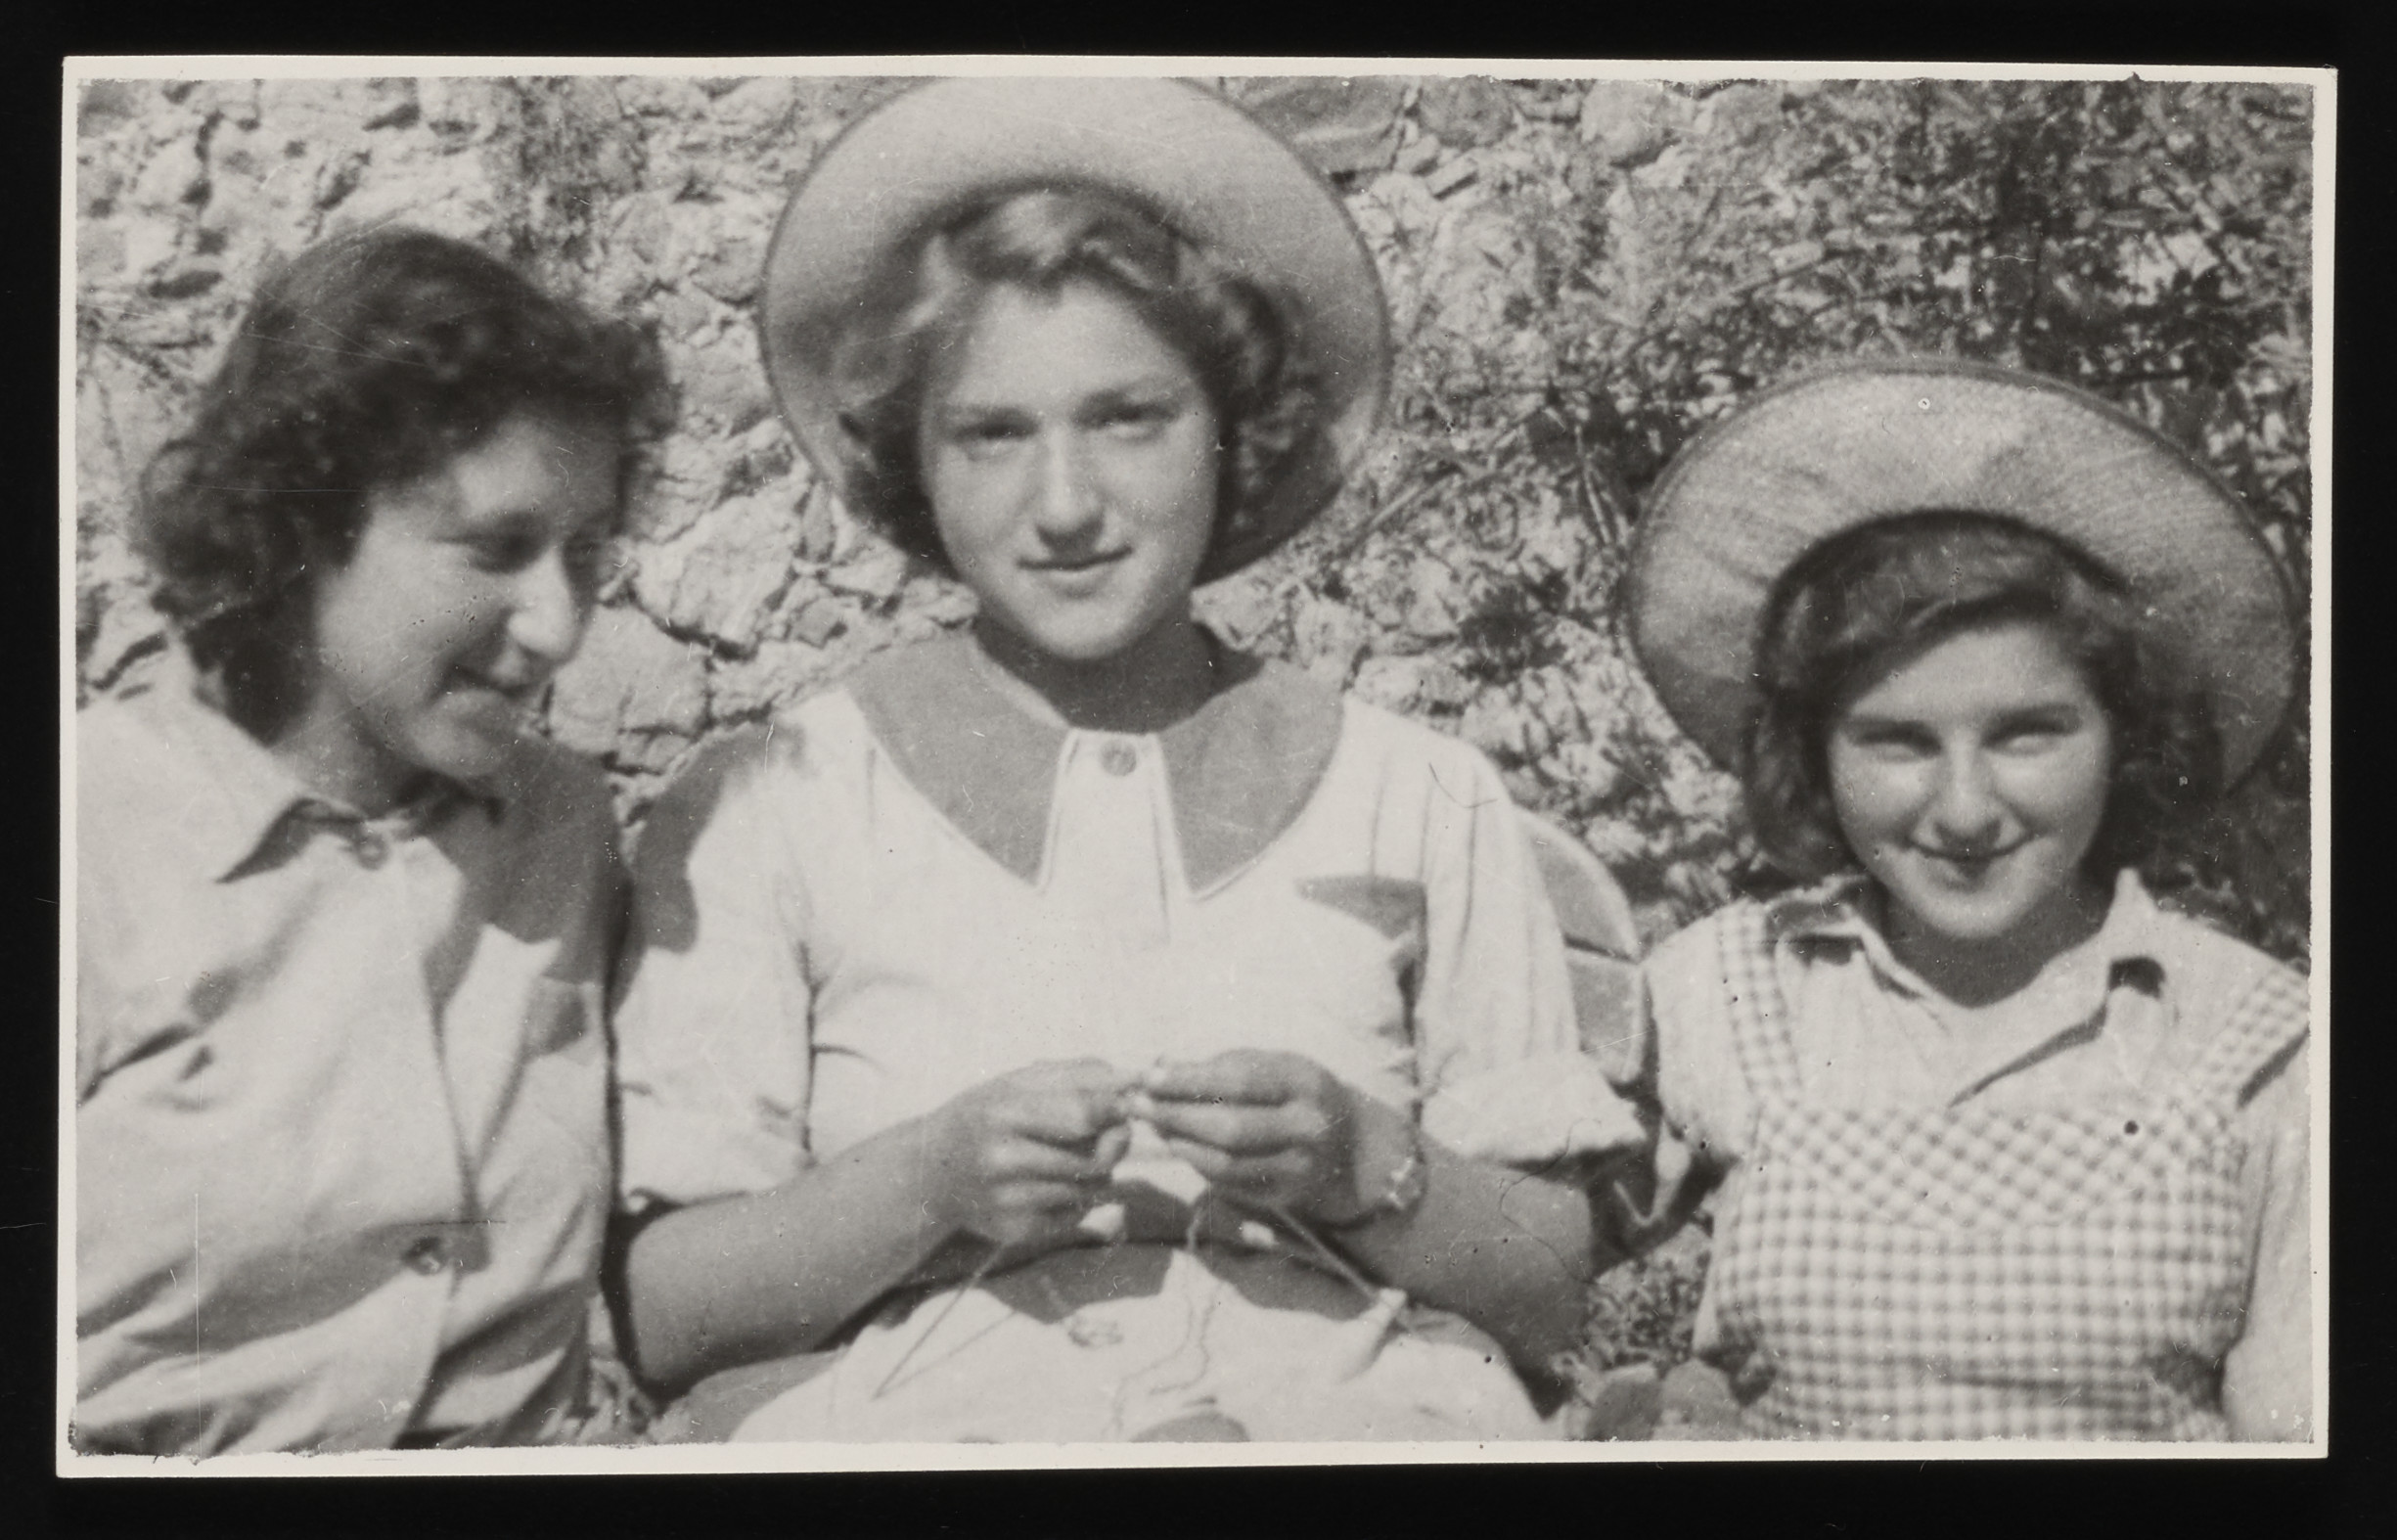 Close-up portrait of three teenage girls in the La Hille children's home.  Pictured left to right are Inge Helft, Lixie Grabkowicz, and Dela Hochberger.